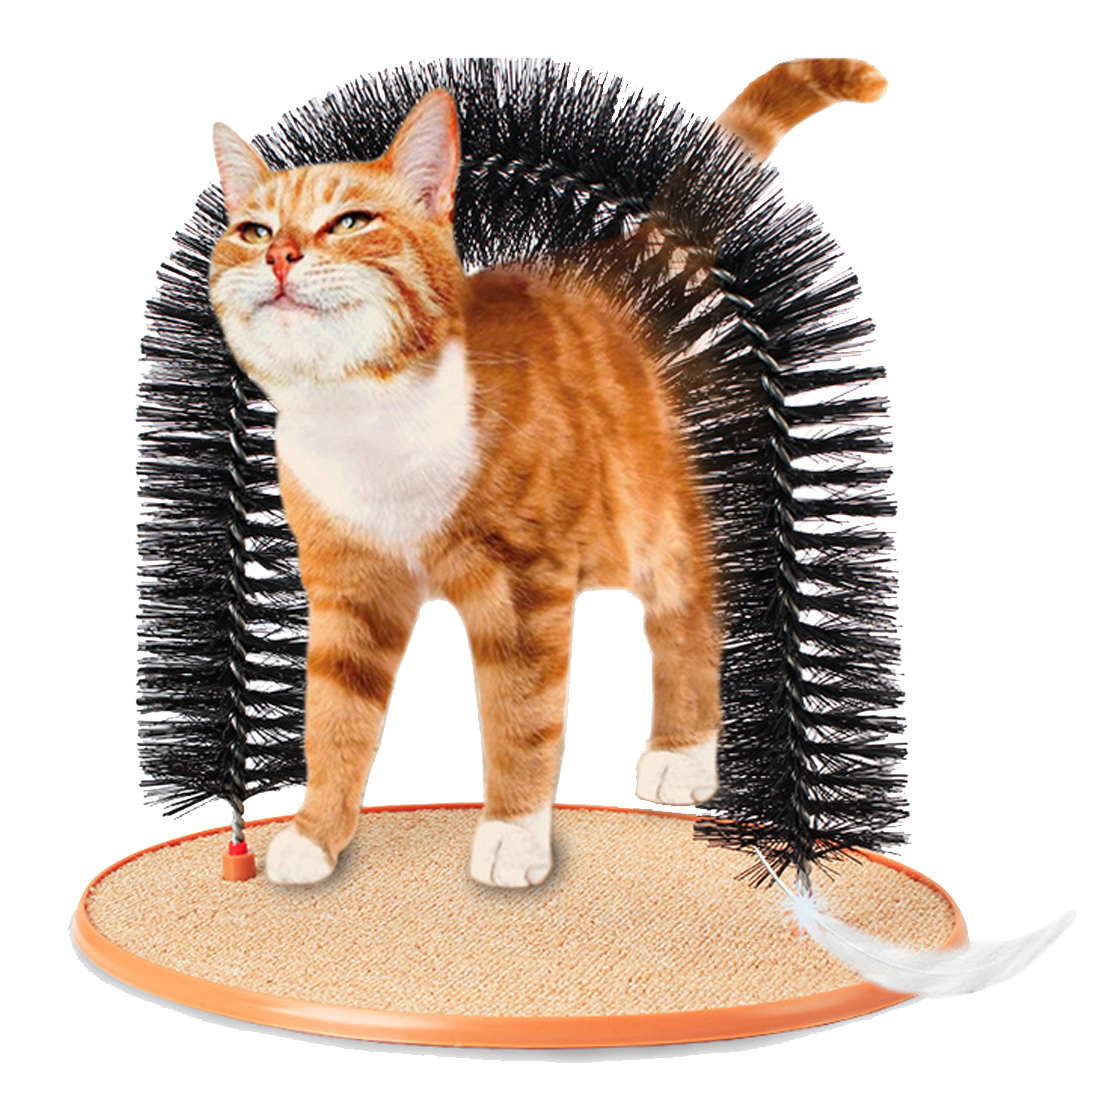 Popular Cat Toy Online-Buy Cheap Cat Toy Online lots from China Cat Toy Online suppliers on